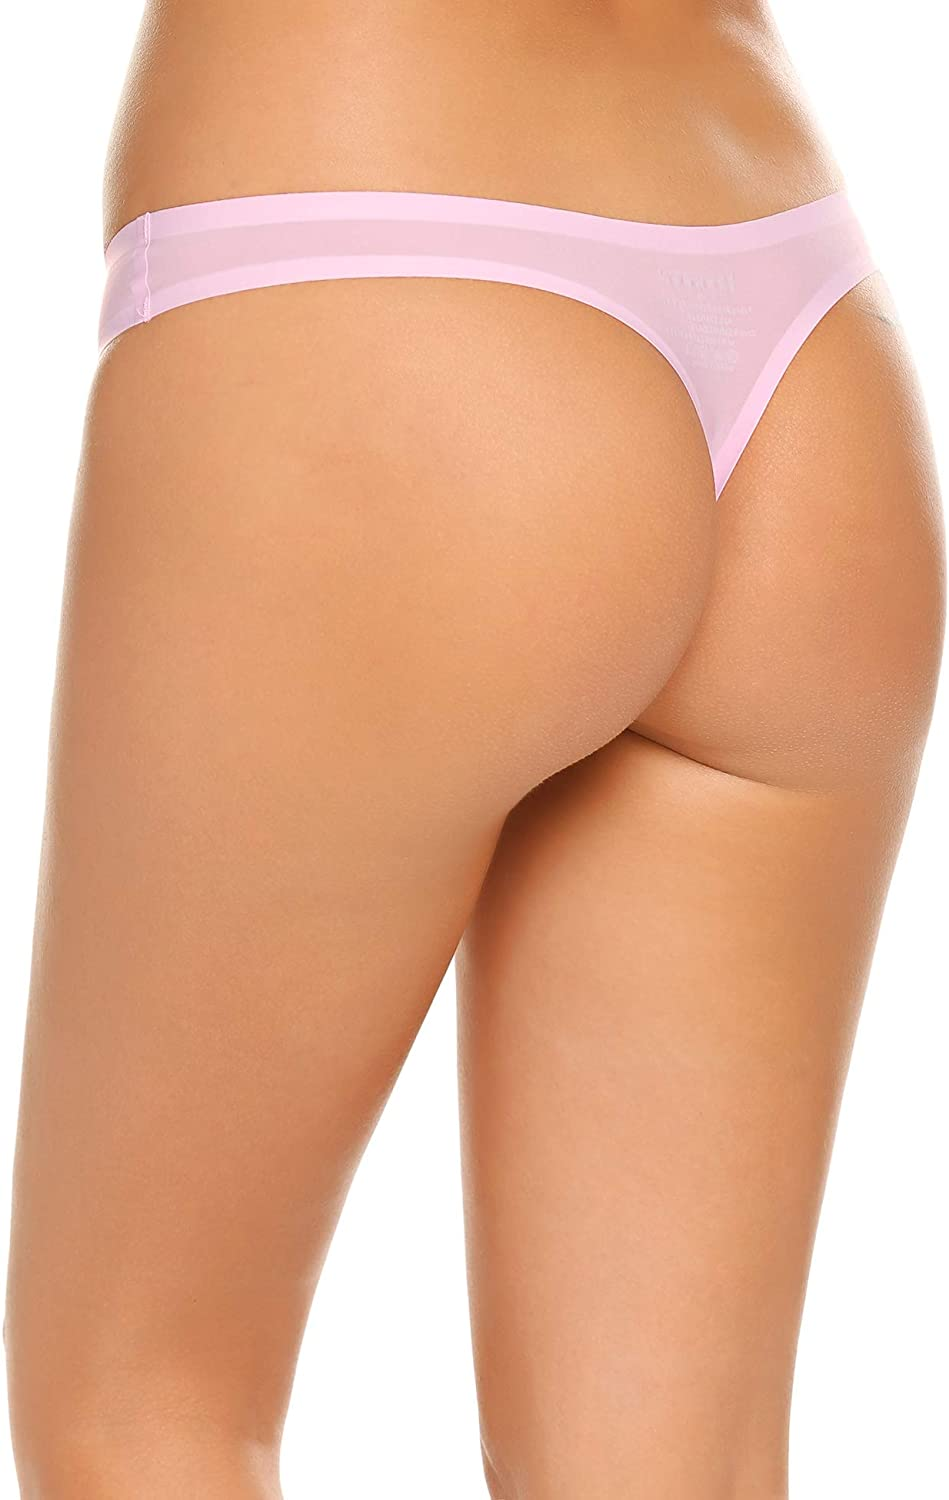 Ekouaer Bikini Panty Womens Seam Free String Microfiber Briefs 3 Pack Assorted Colors